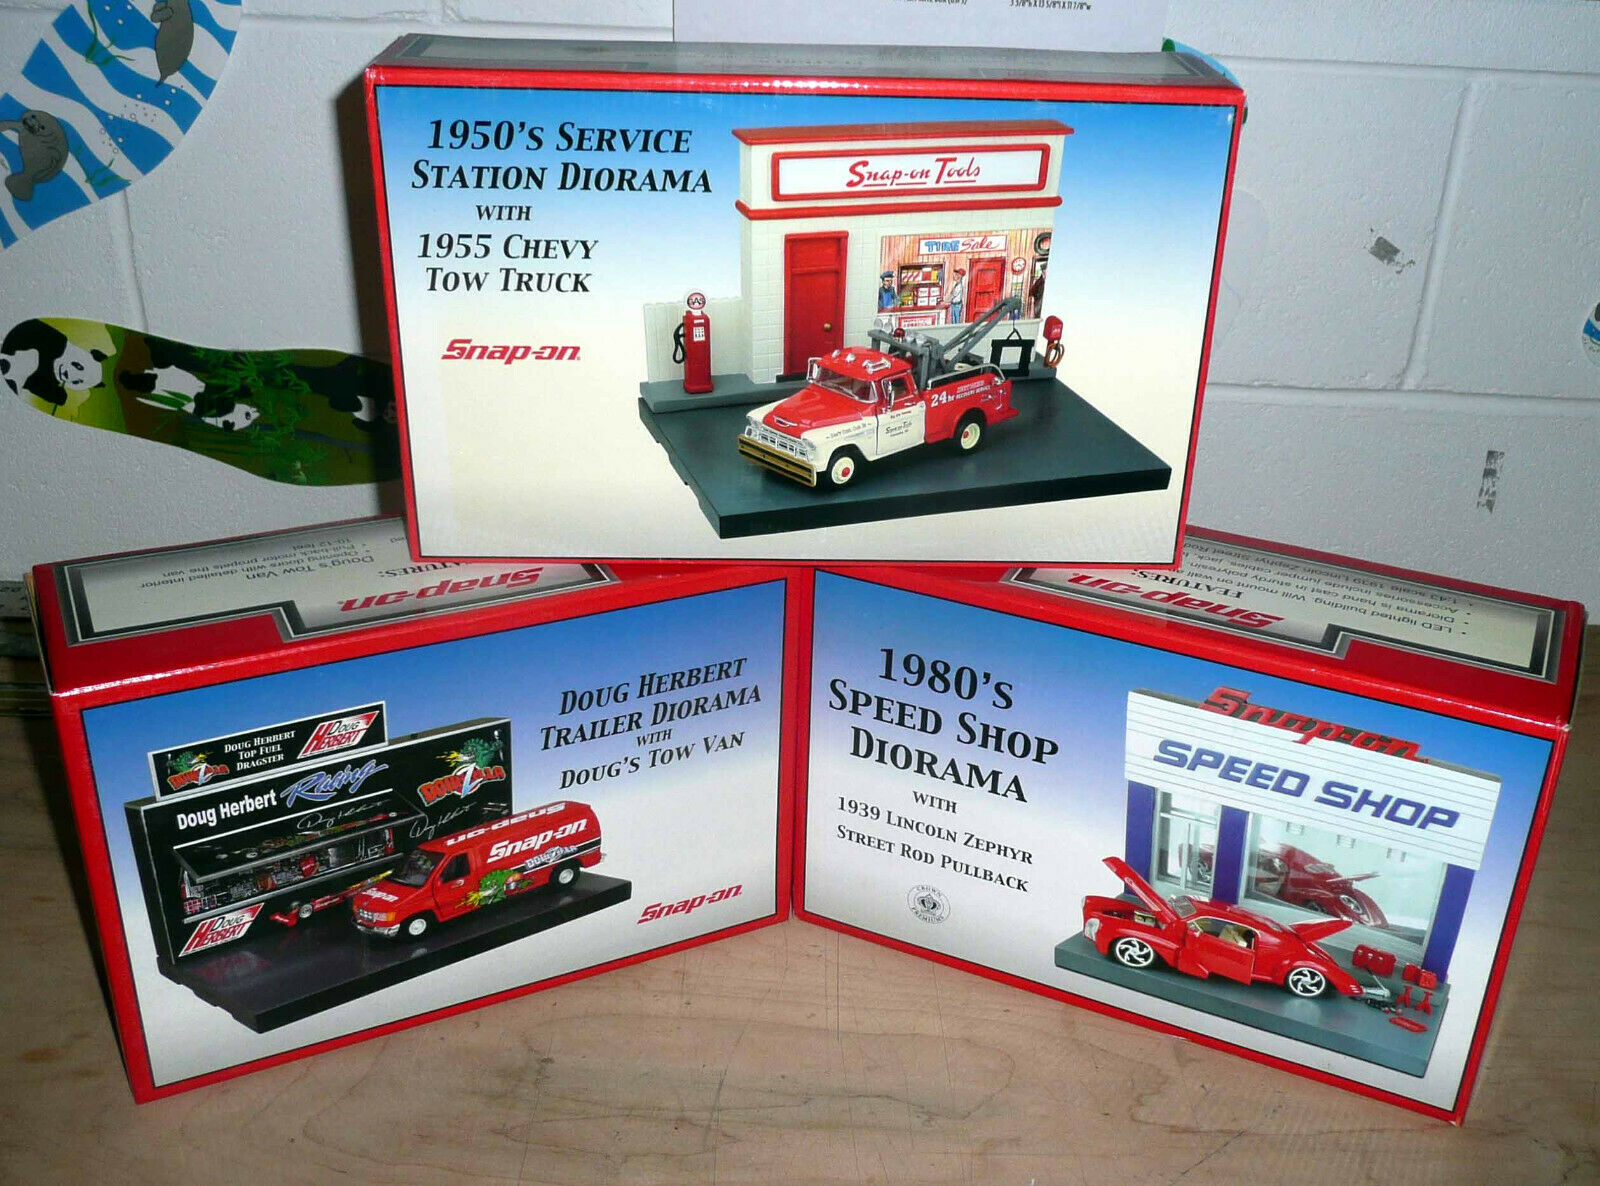 Lot of 3 Crown Premiums Snap-On Tools Tools Tools Diorama Sets  1 43 Scale  New  See Pics f54a30